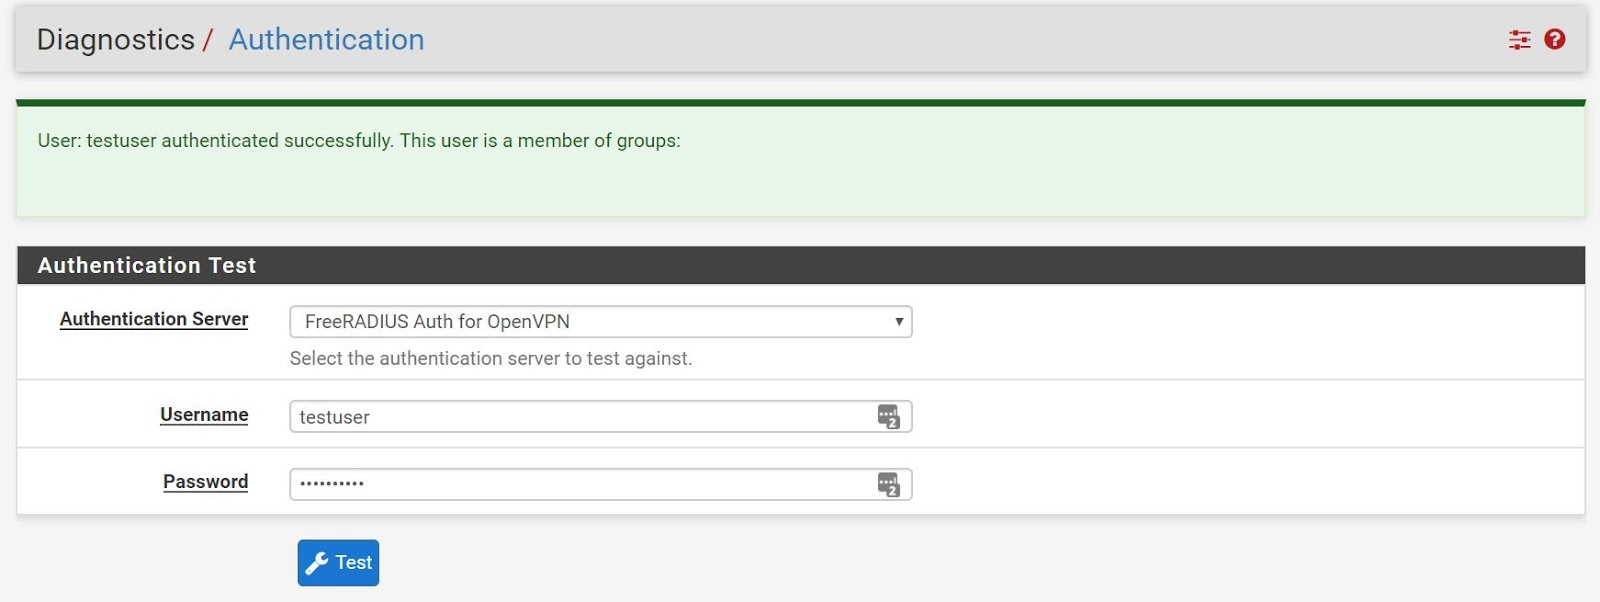 pfSense OpenVPN Setup with FreeRadius3 2fa Authentication